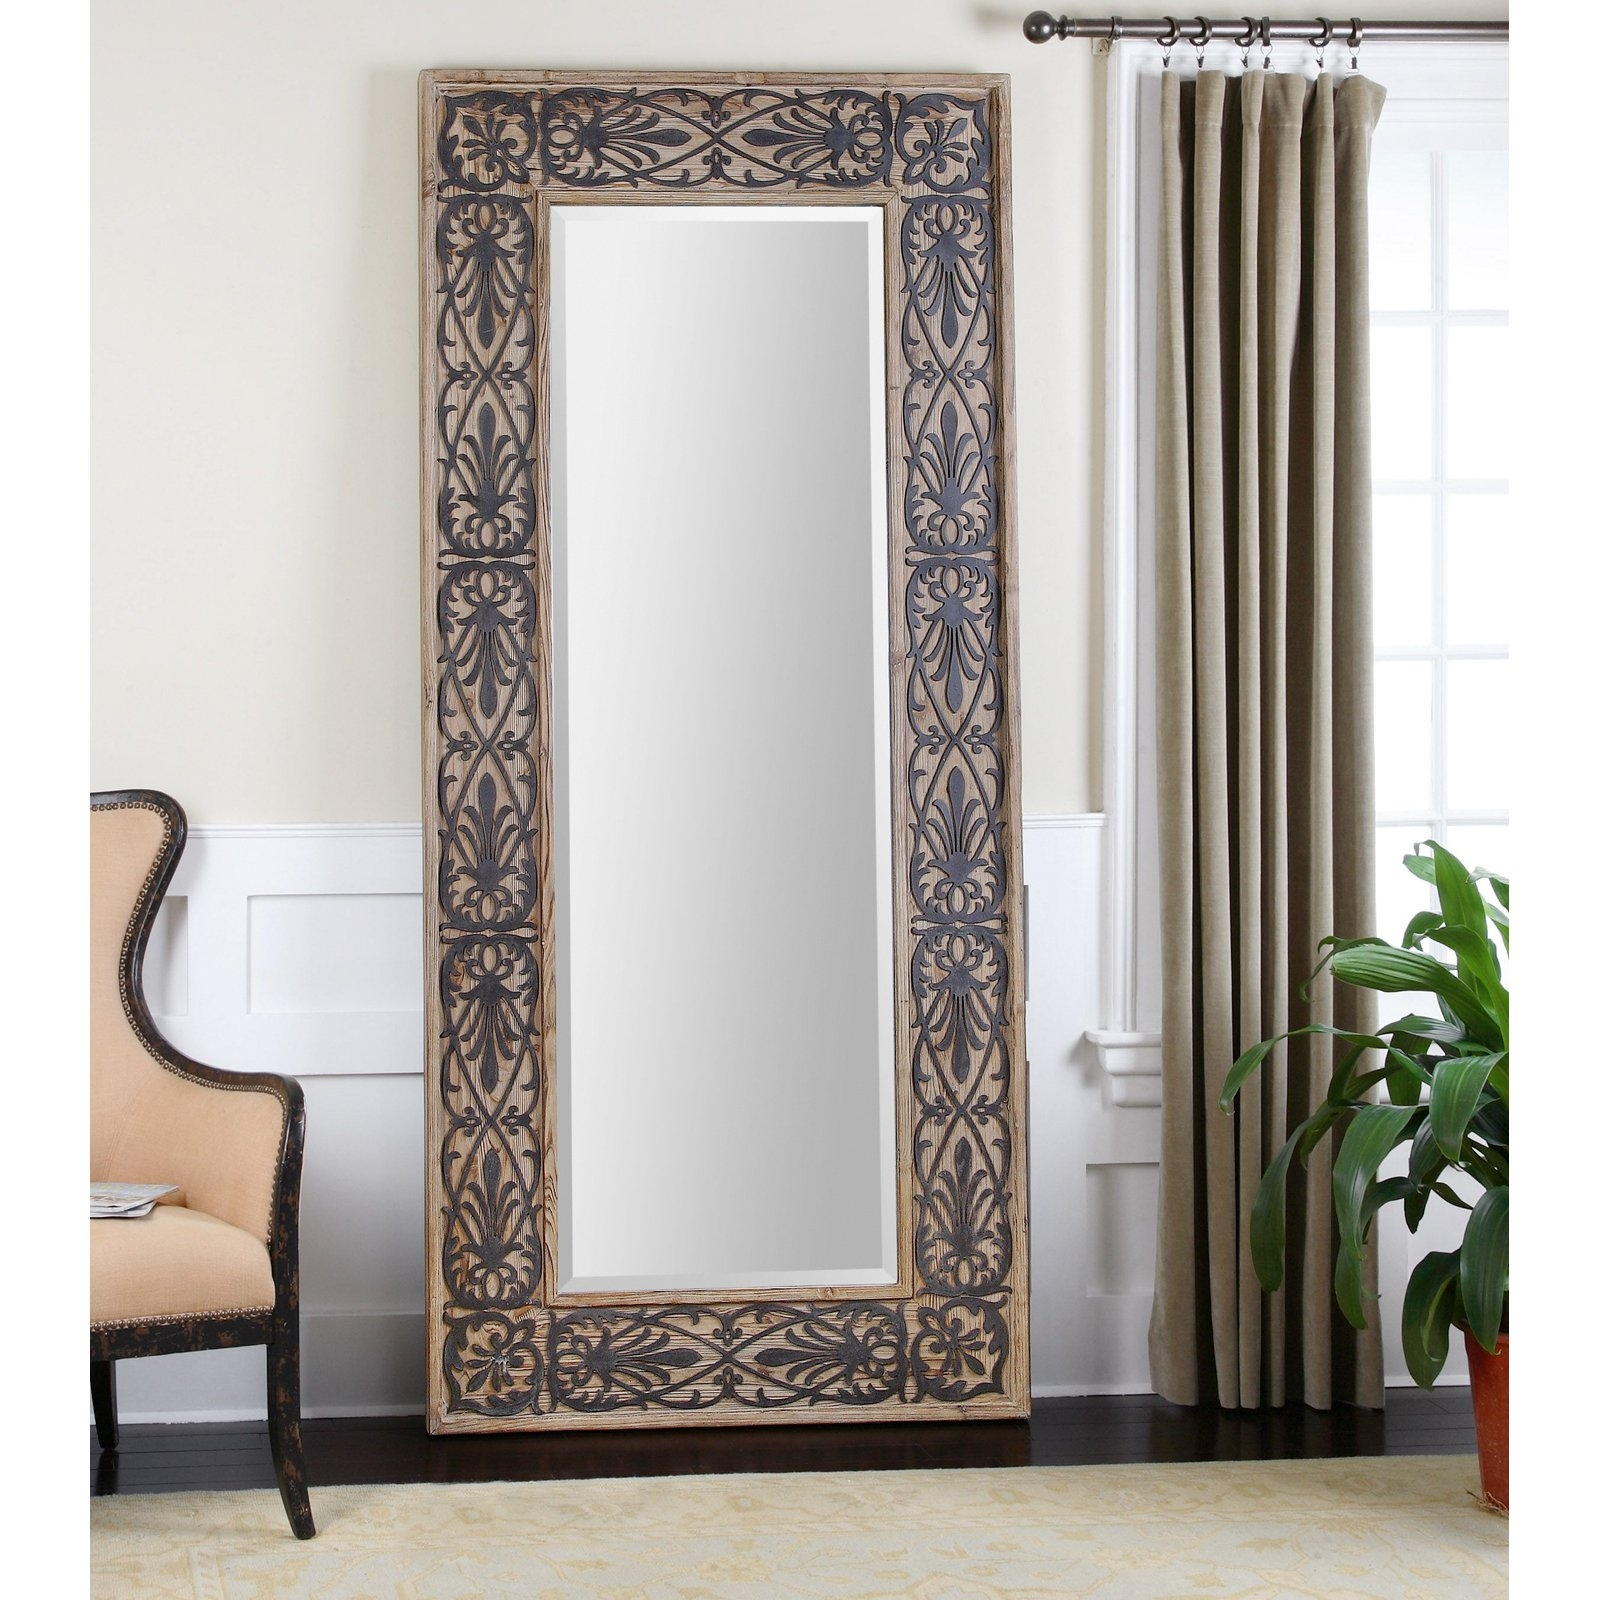 15 ideas of decorative full length mirror mirror ideas for Decorative full length wall mirrors